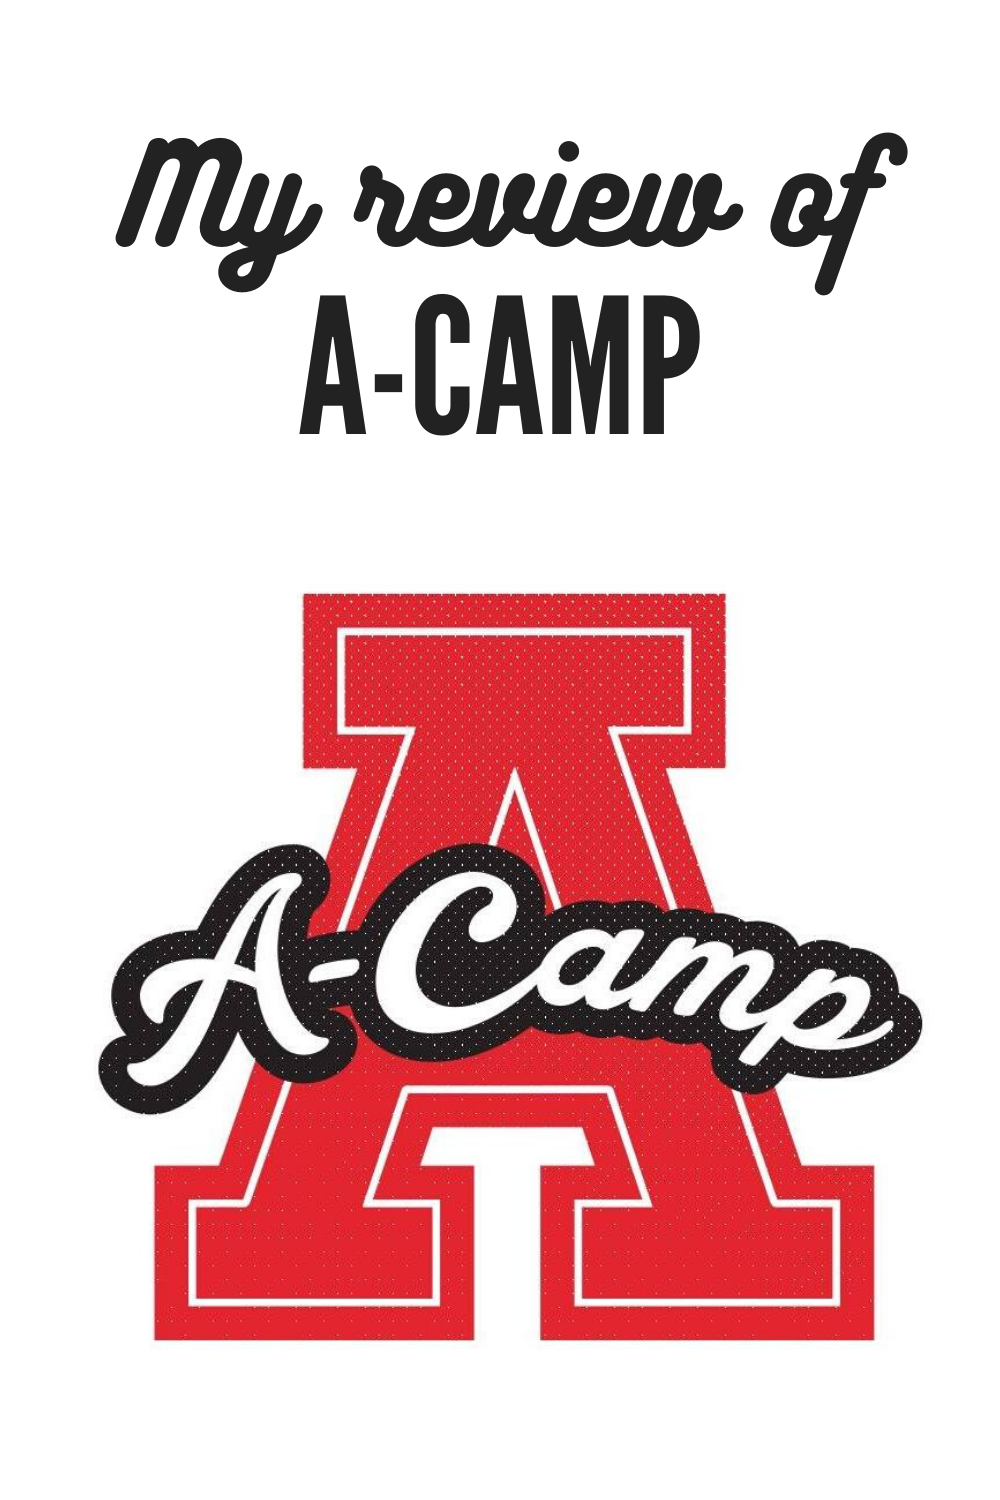 My review of A-Camp